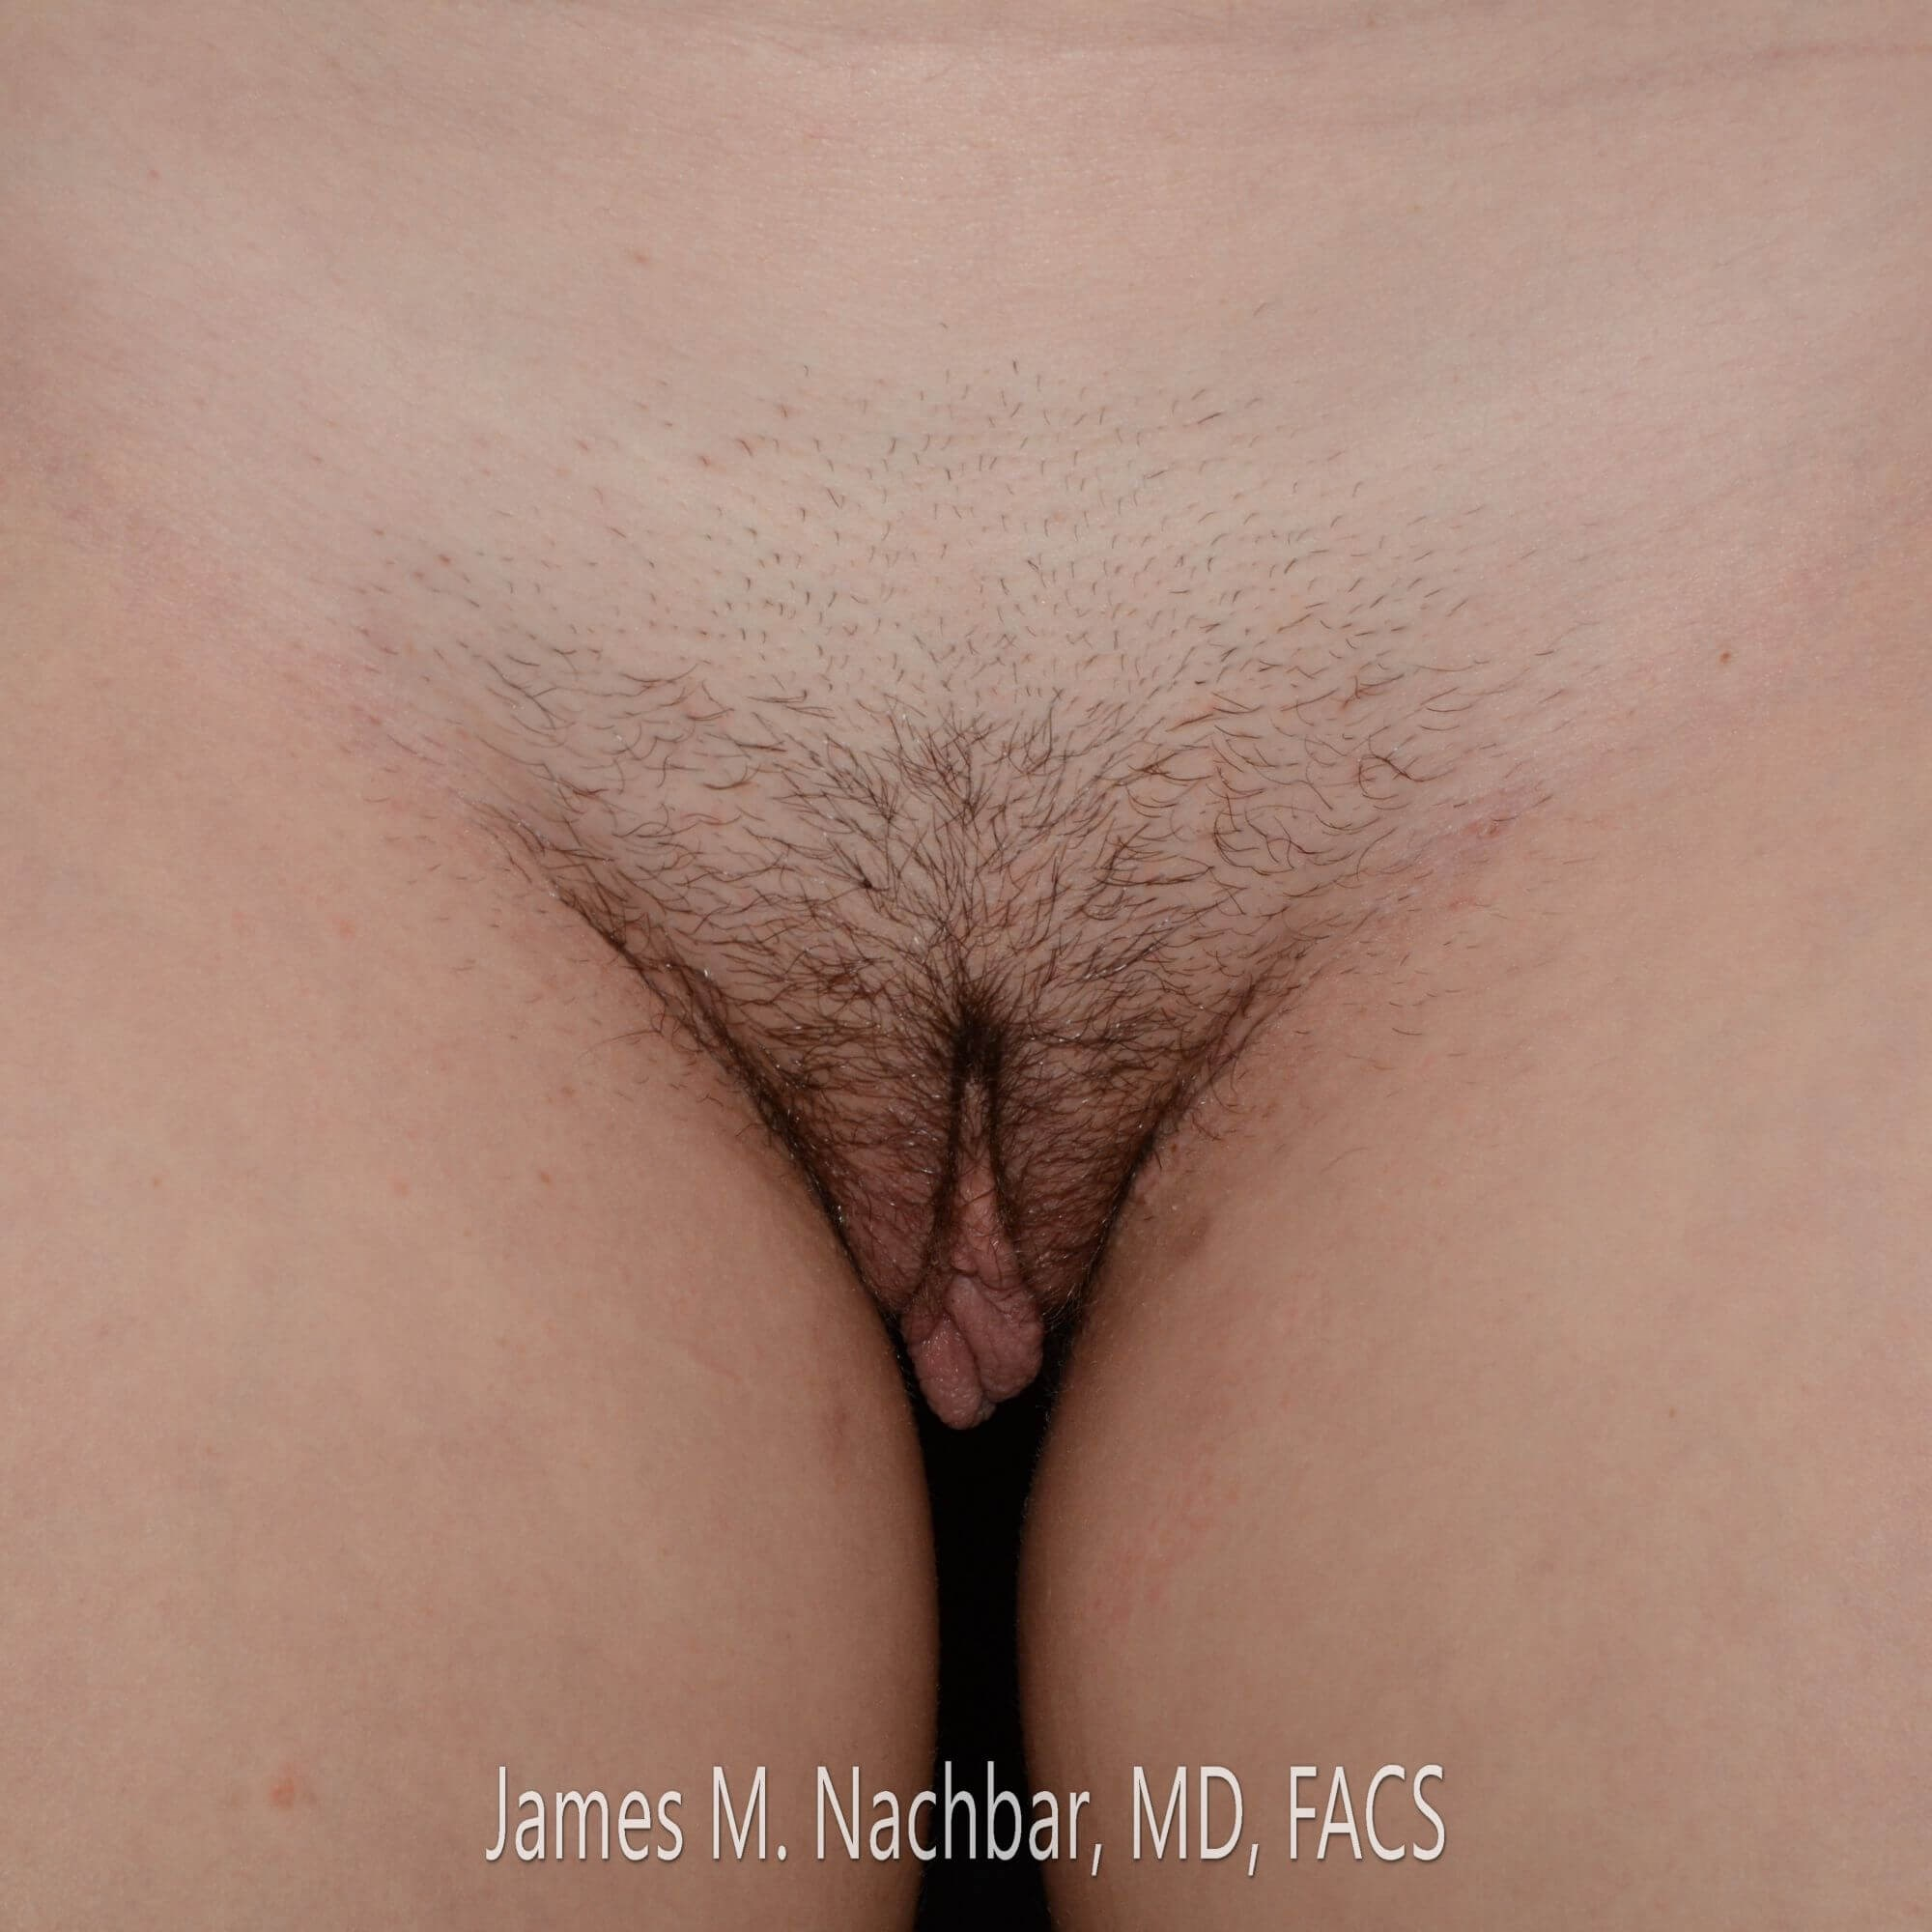 Labiaplasty, Front View Before